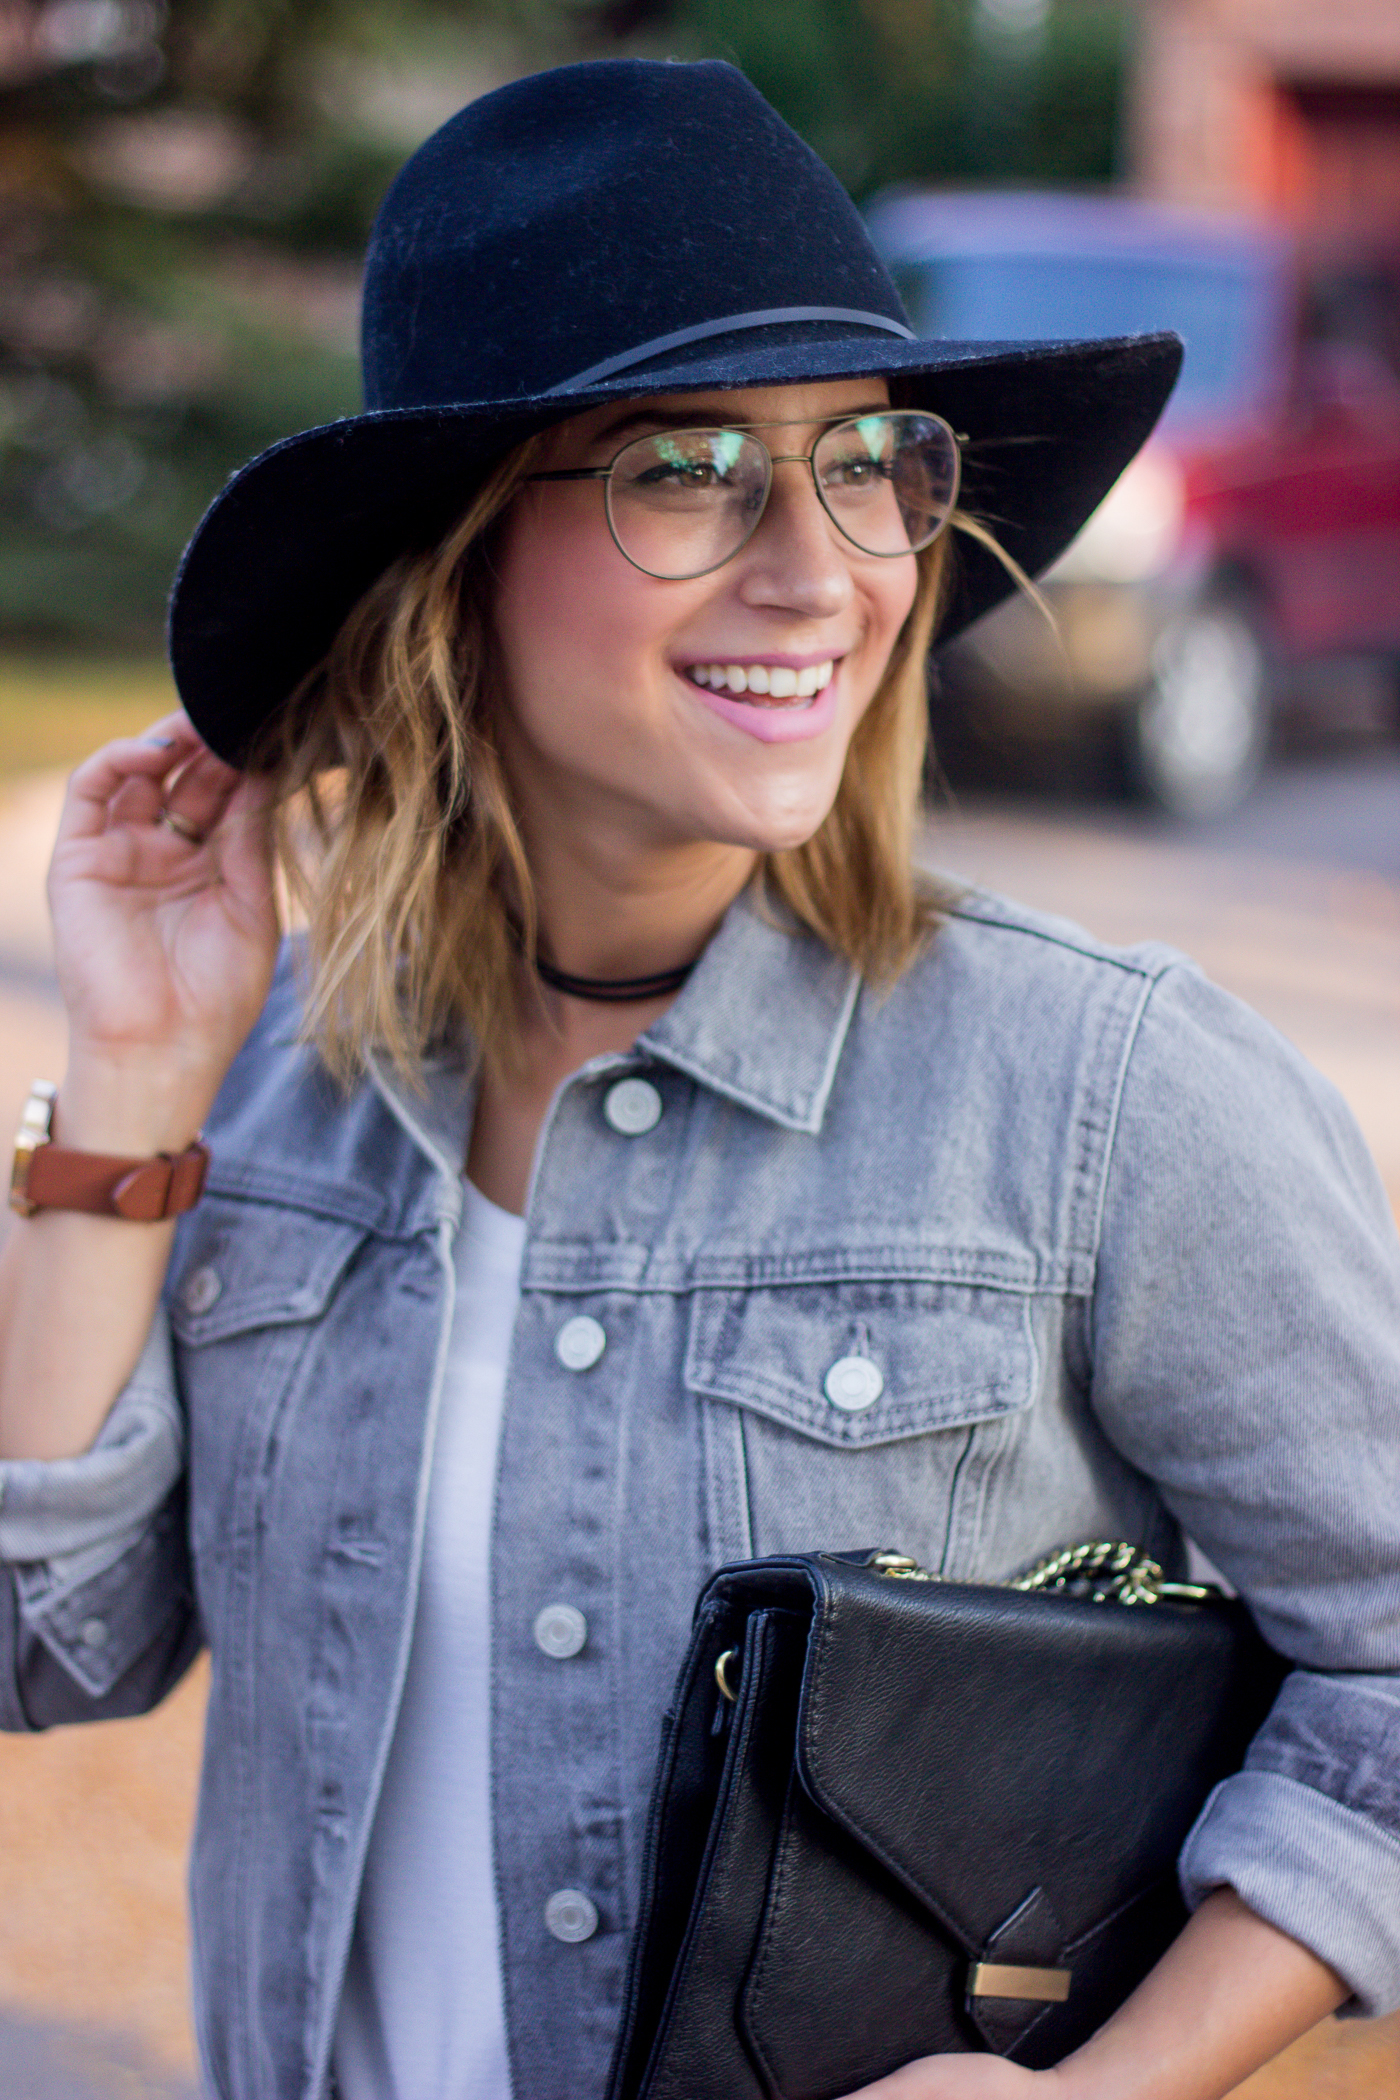 Canadian fashion blogger Jackie from Something About That is wearing the Joseph Marc Observation Aviator frames from Clearly in size small